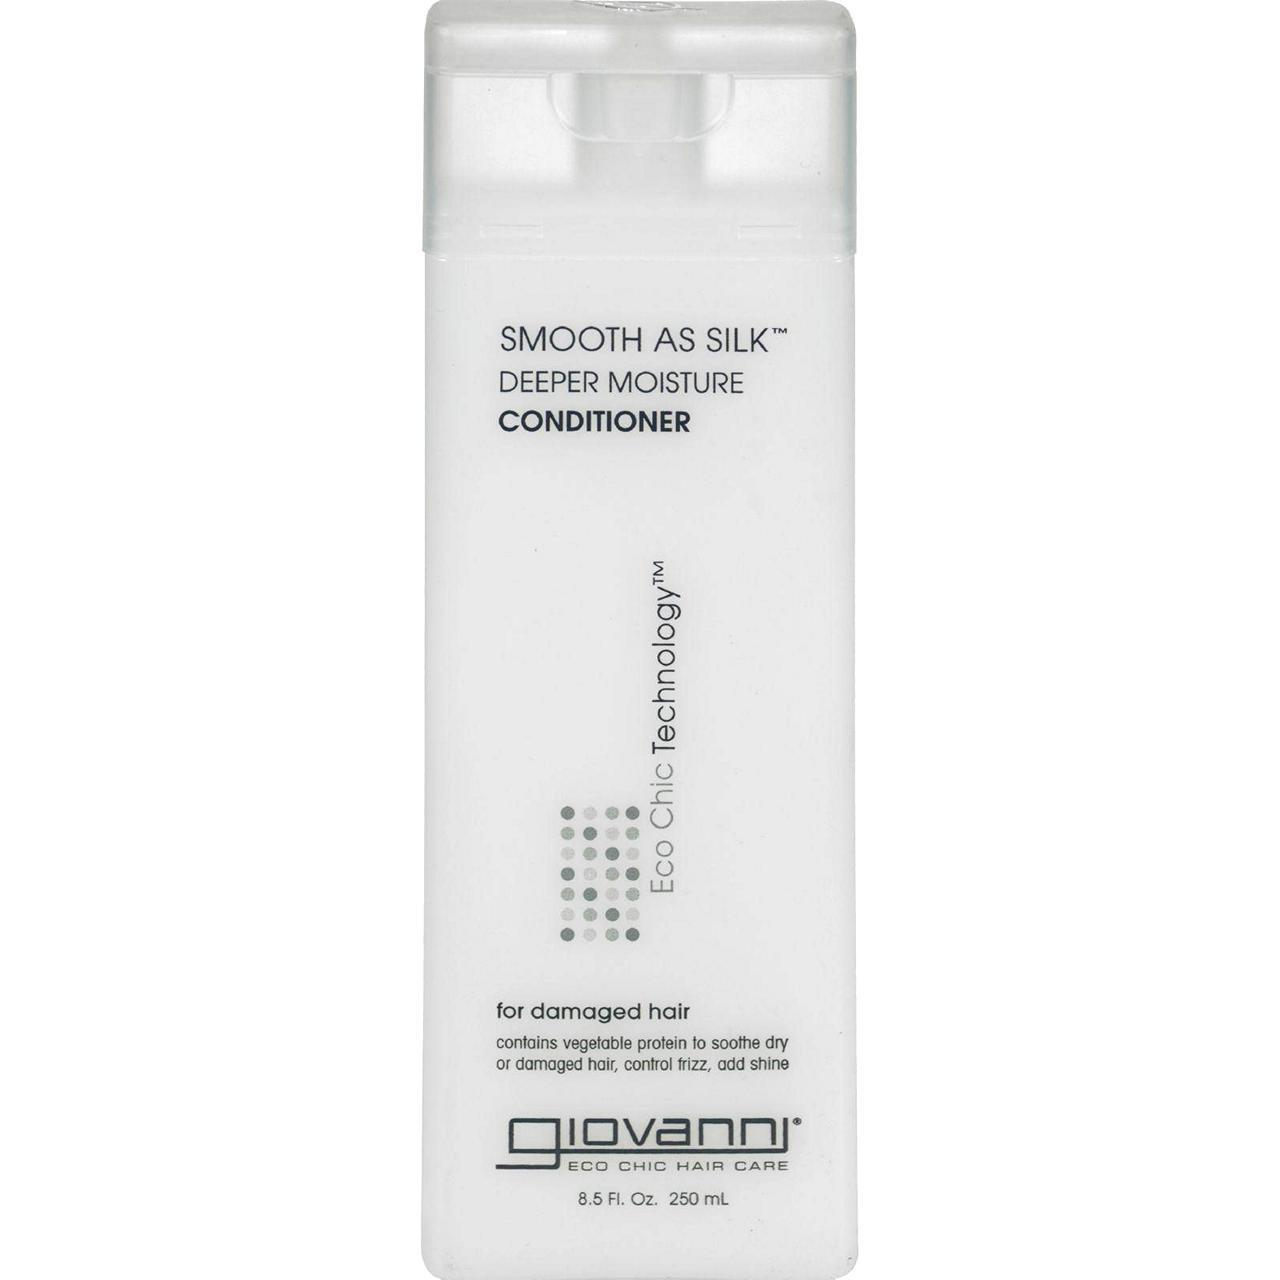 Giovanni Smooth As Silk Deeper Moisture Conditioner - 8.5 Fl Oz